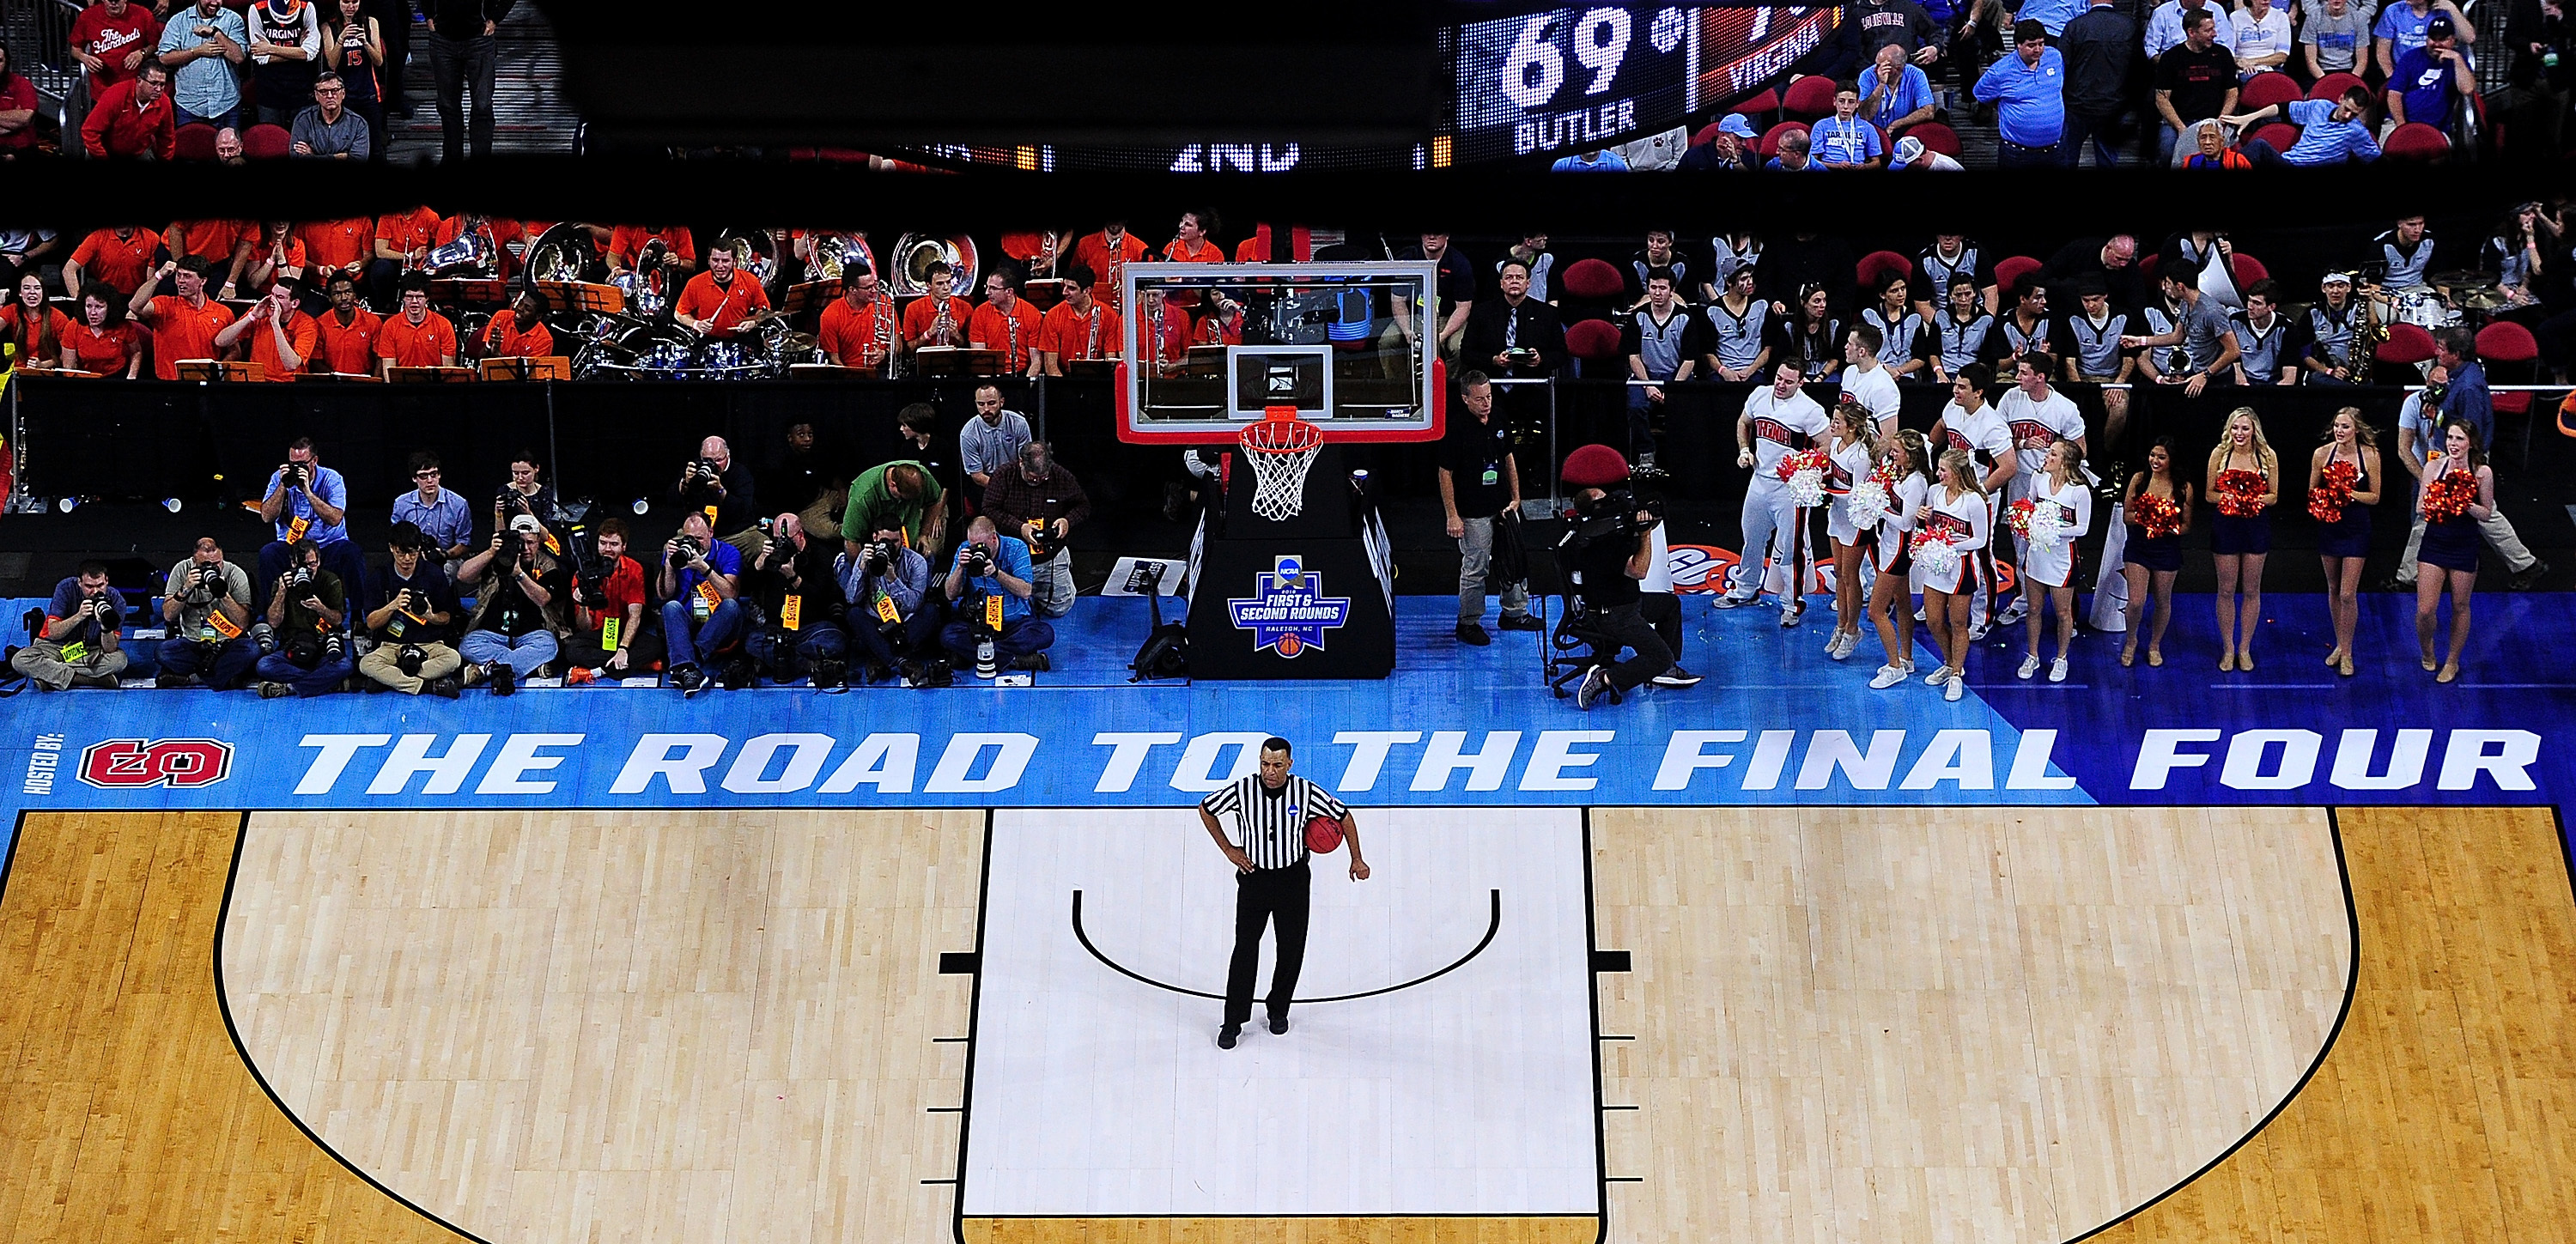 An official and others wait for play to resume during an NCAA Men's Basketball Tournament second-round game between the Butler Bulldogs and the Virginia Cavaliers in March in Raleigh, N.C. This coming spring the Road to the Final Four won't go through North Carolina, as the NCAA has decided to move three games out of Greensboro. (Photo by Grant Halverson/Getty Images)